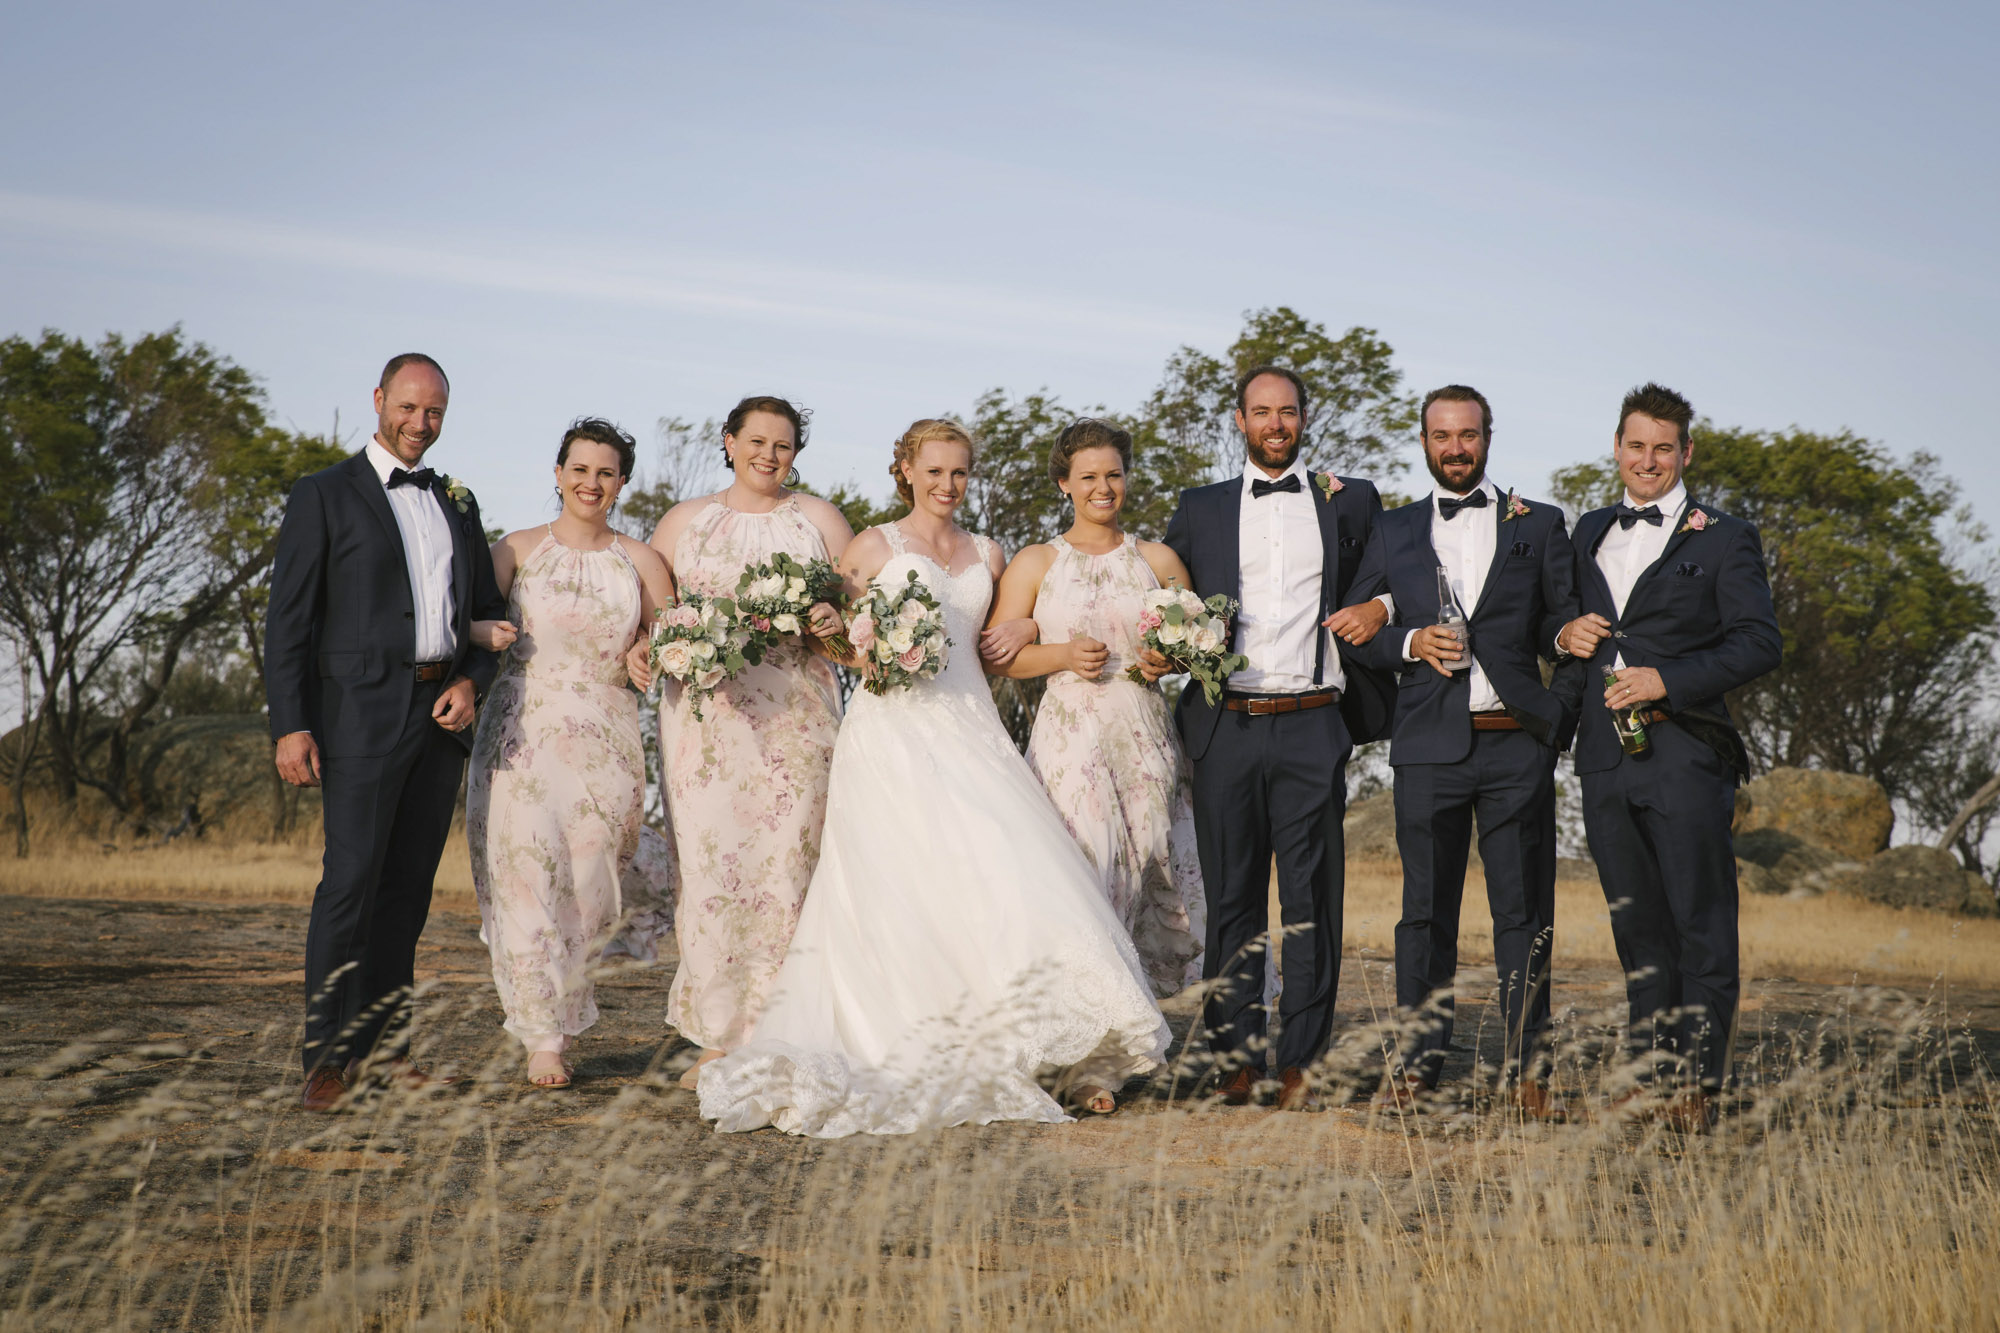 Angie-Roe-Photography-Wedding-Perth-Northam-Wheatbelt-Country-Rural (68).jpg